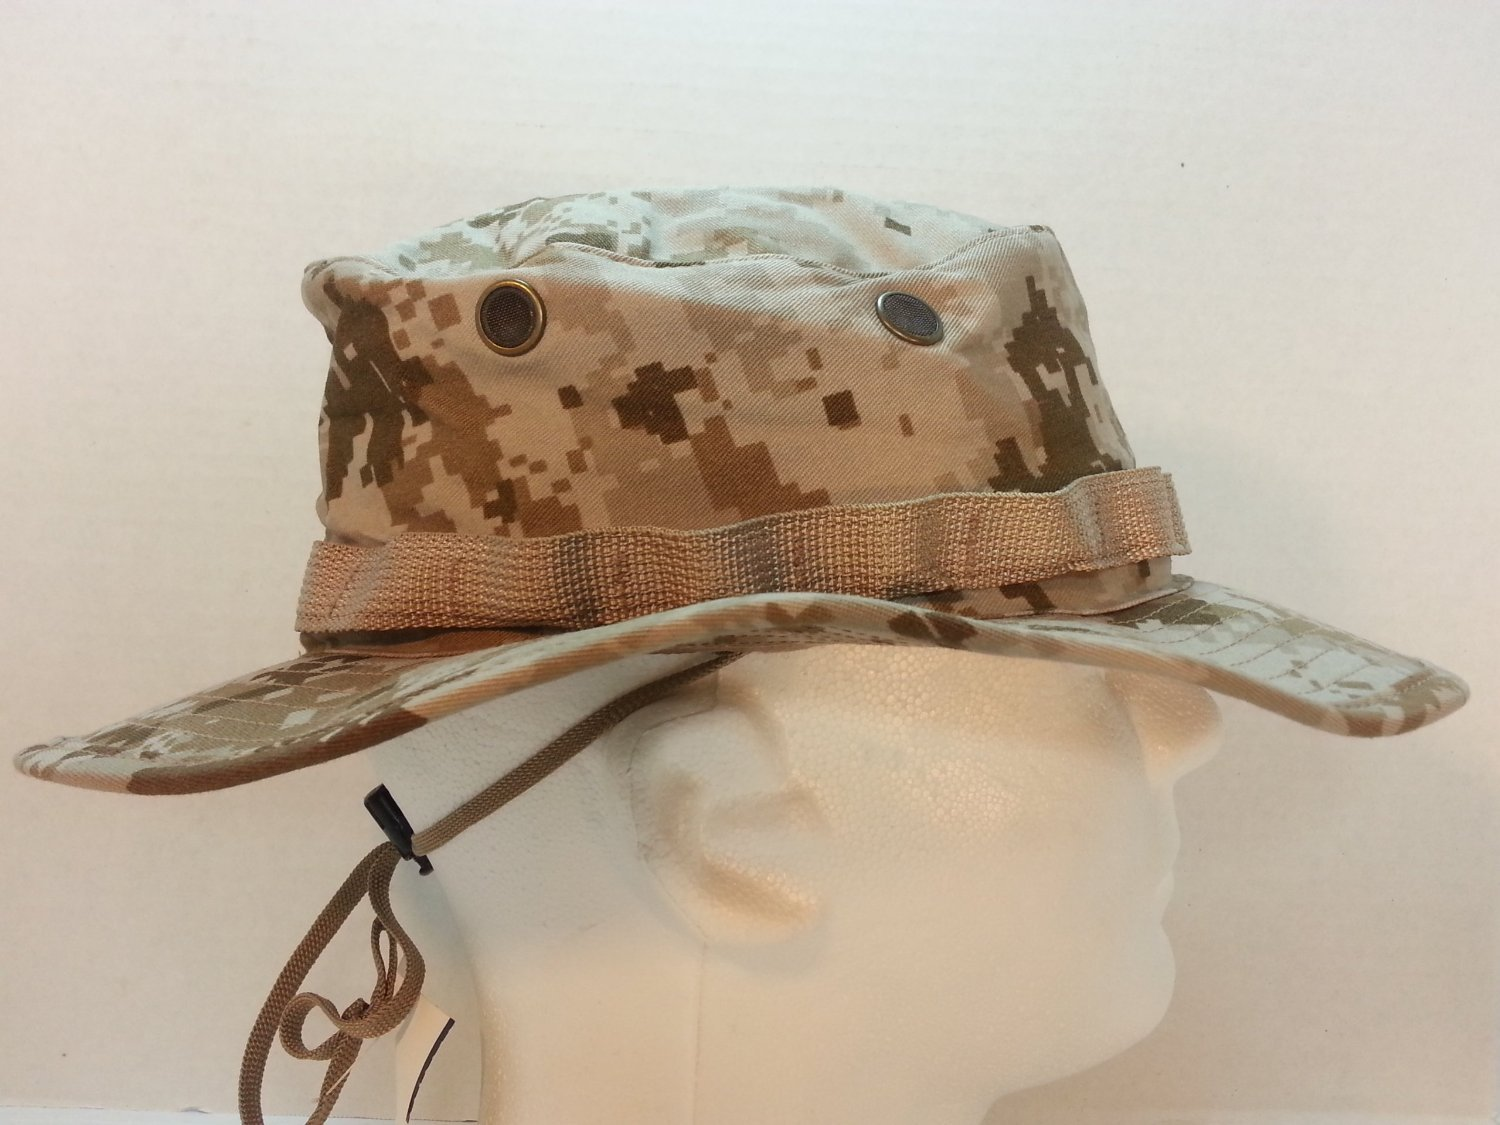 a56d0703ef747 Get Quotations · USMC DIGITAL DESERT MARPAT (MARINE PATTERN) BOONIE HAT  FIELD COVER USMC ISSUE X-